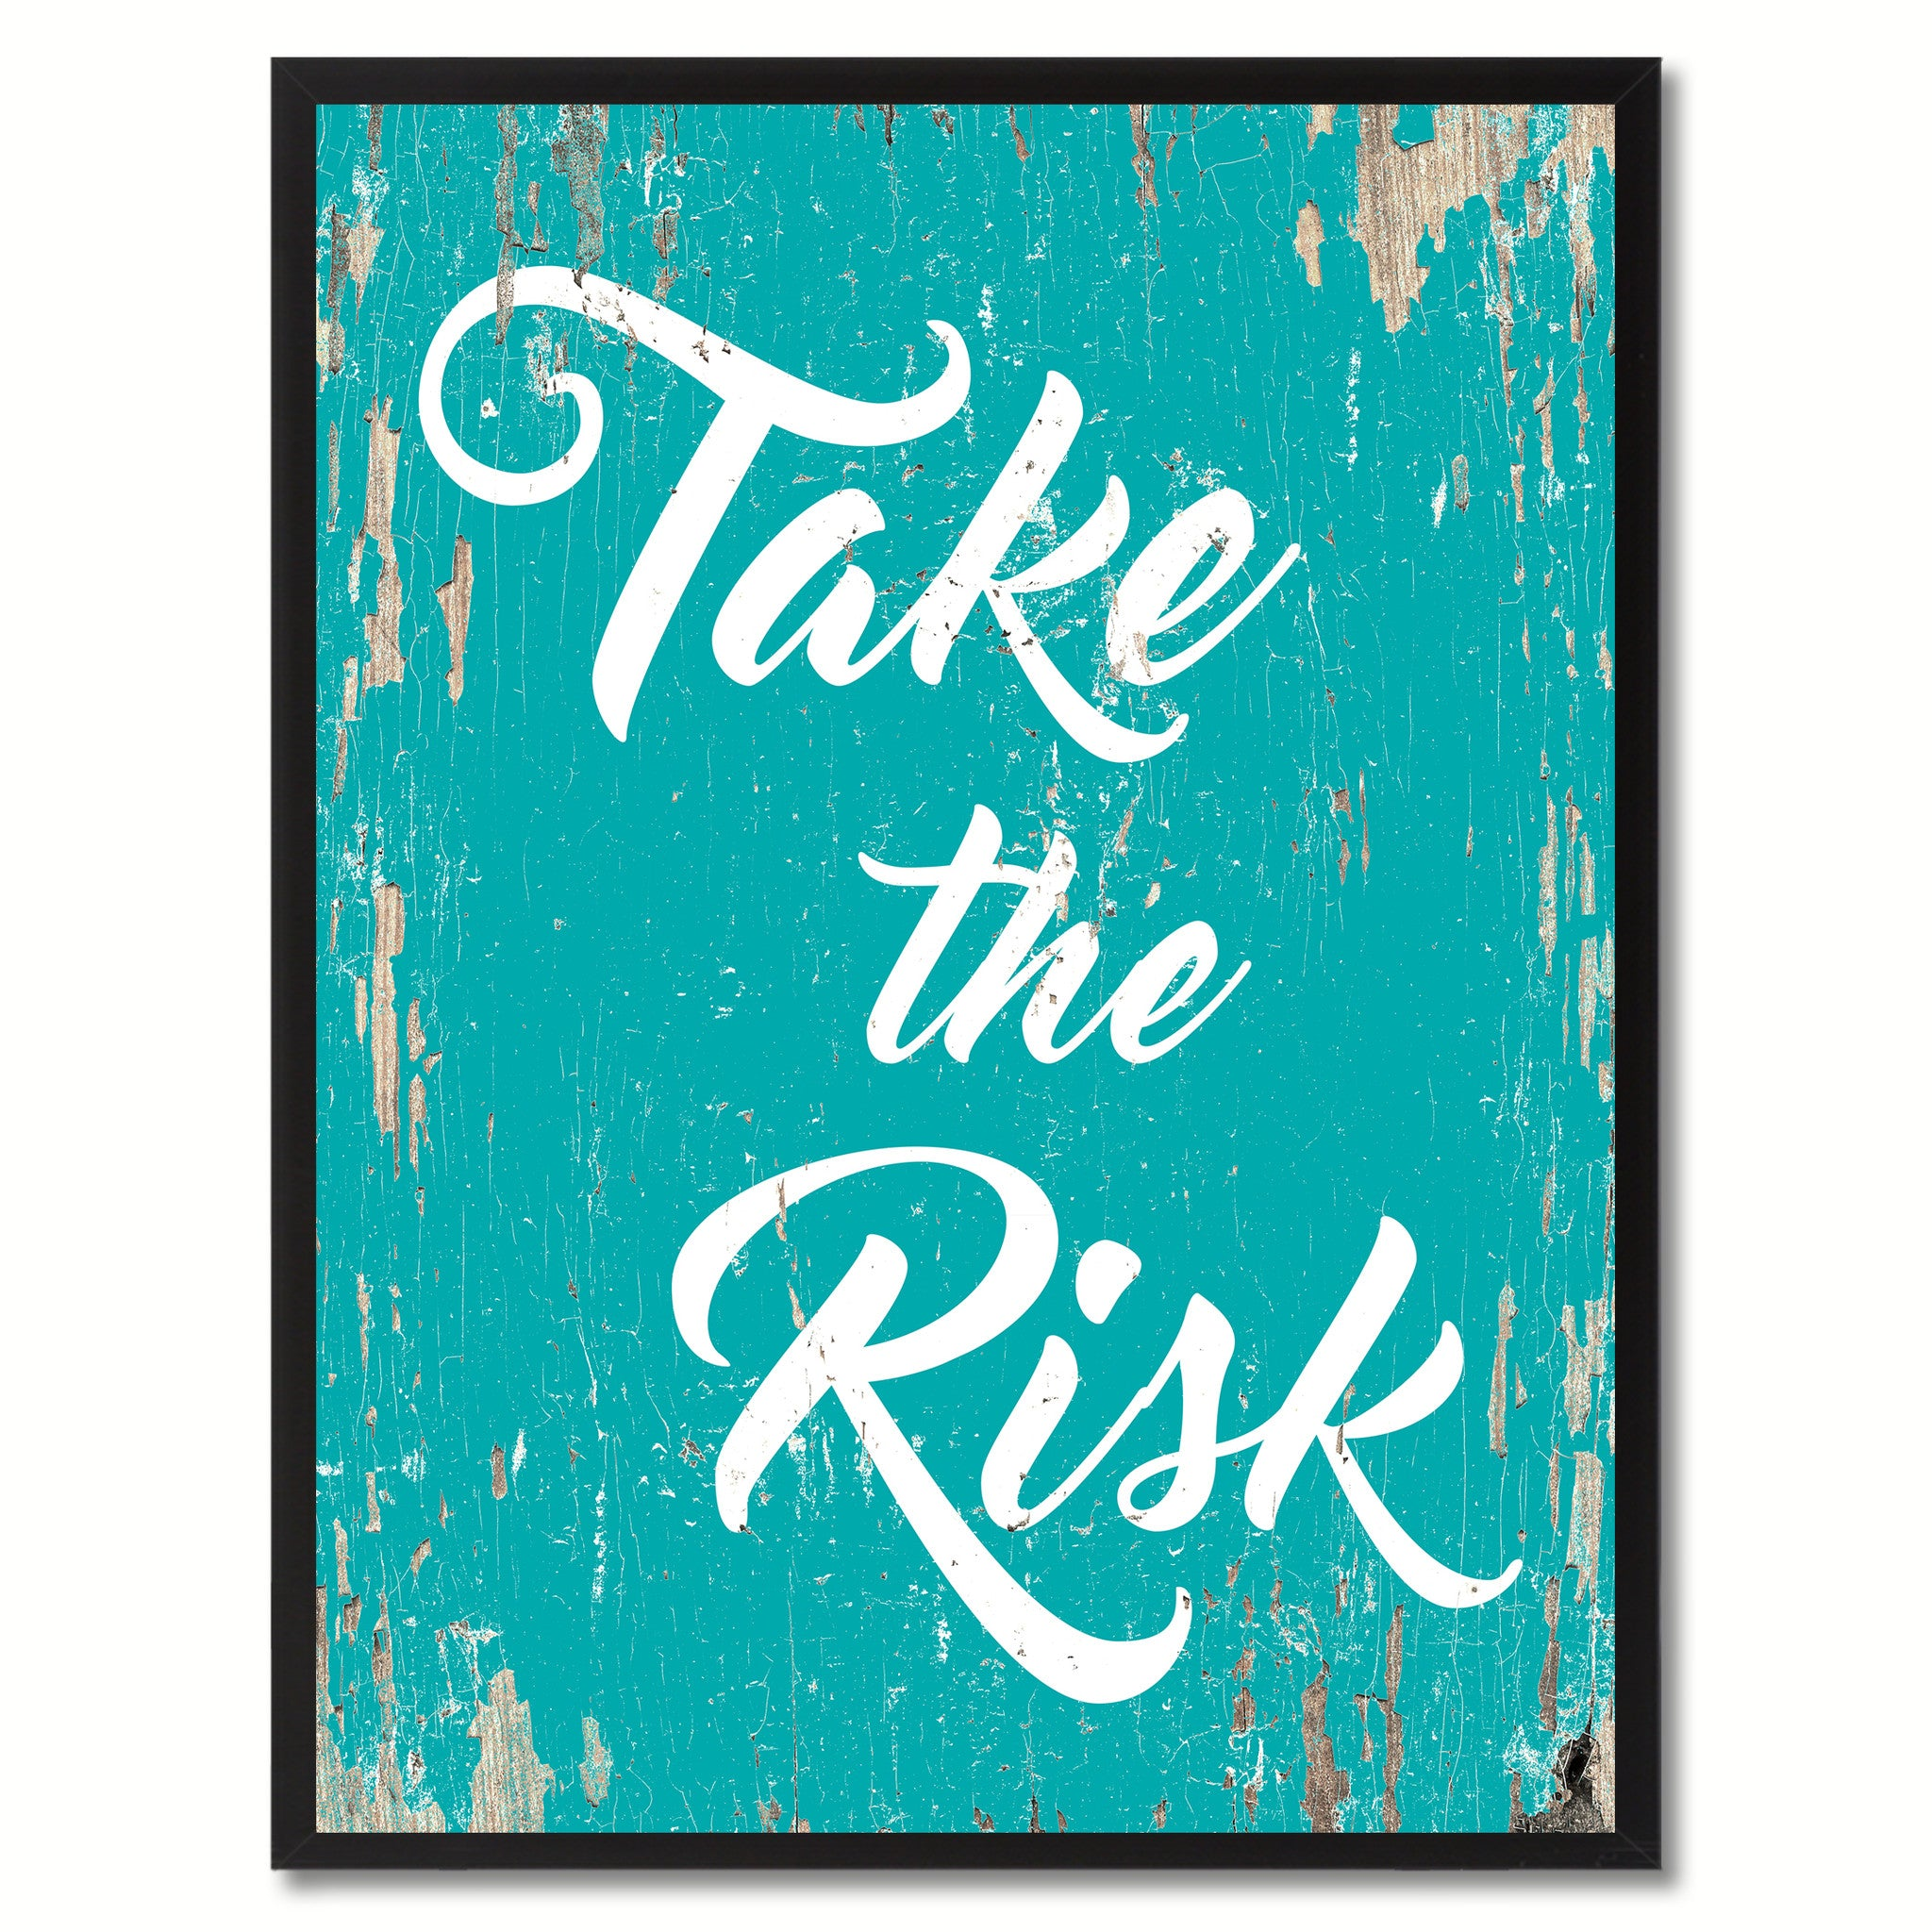 Take The Risk Saying Canvas Print, Black Picture Frame Home Decor Wall Art Gifts